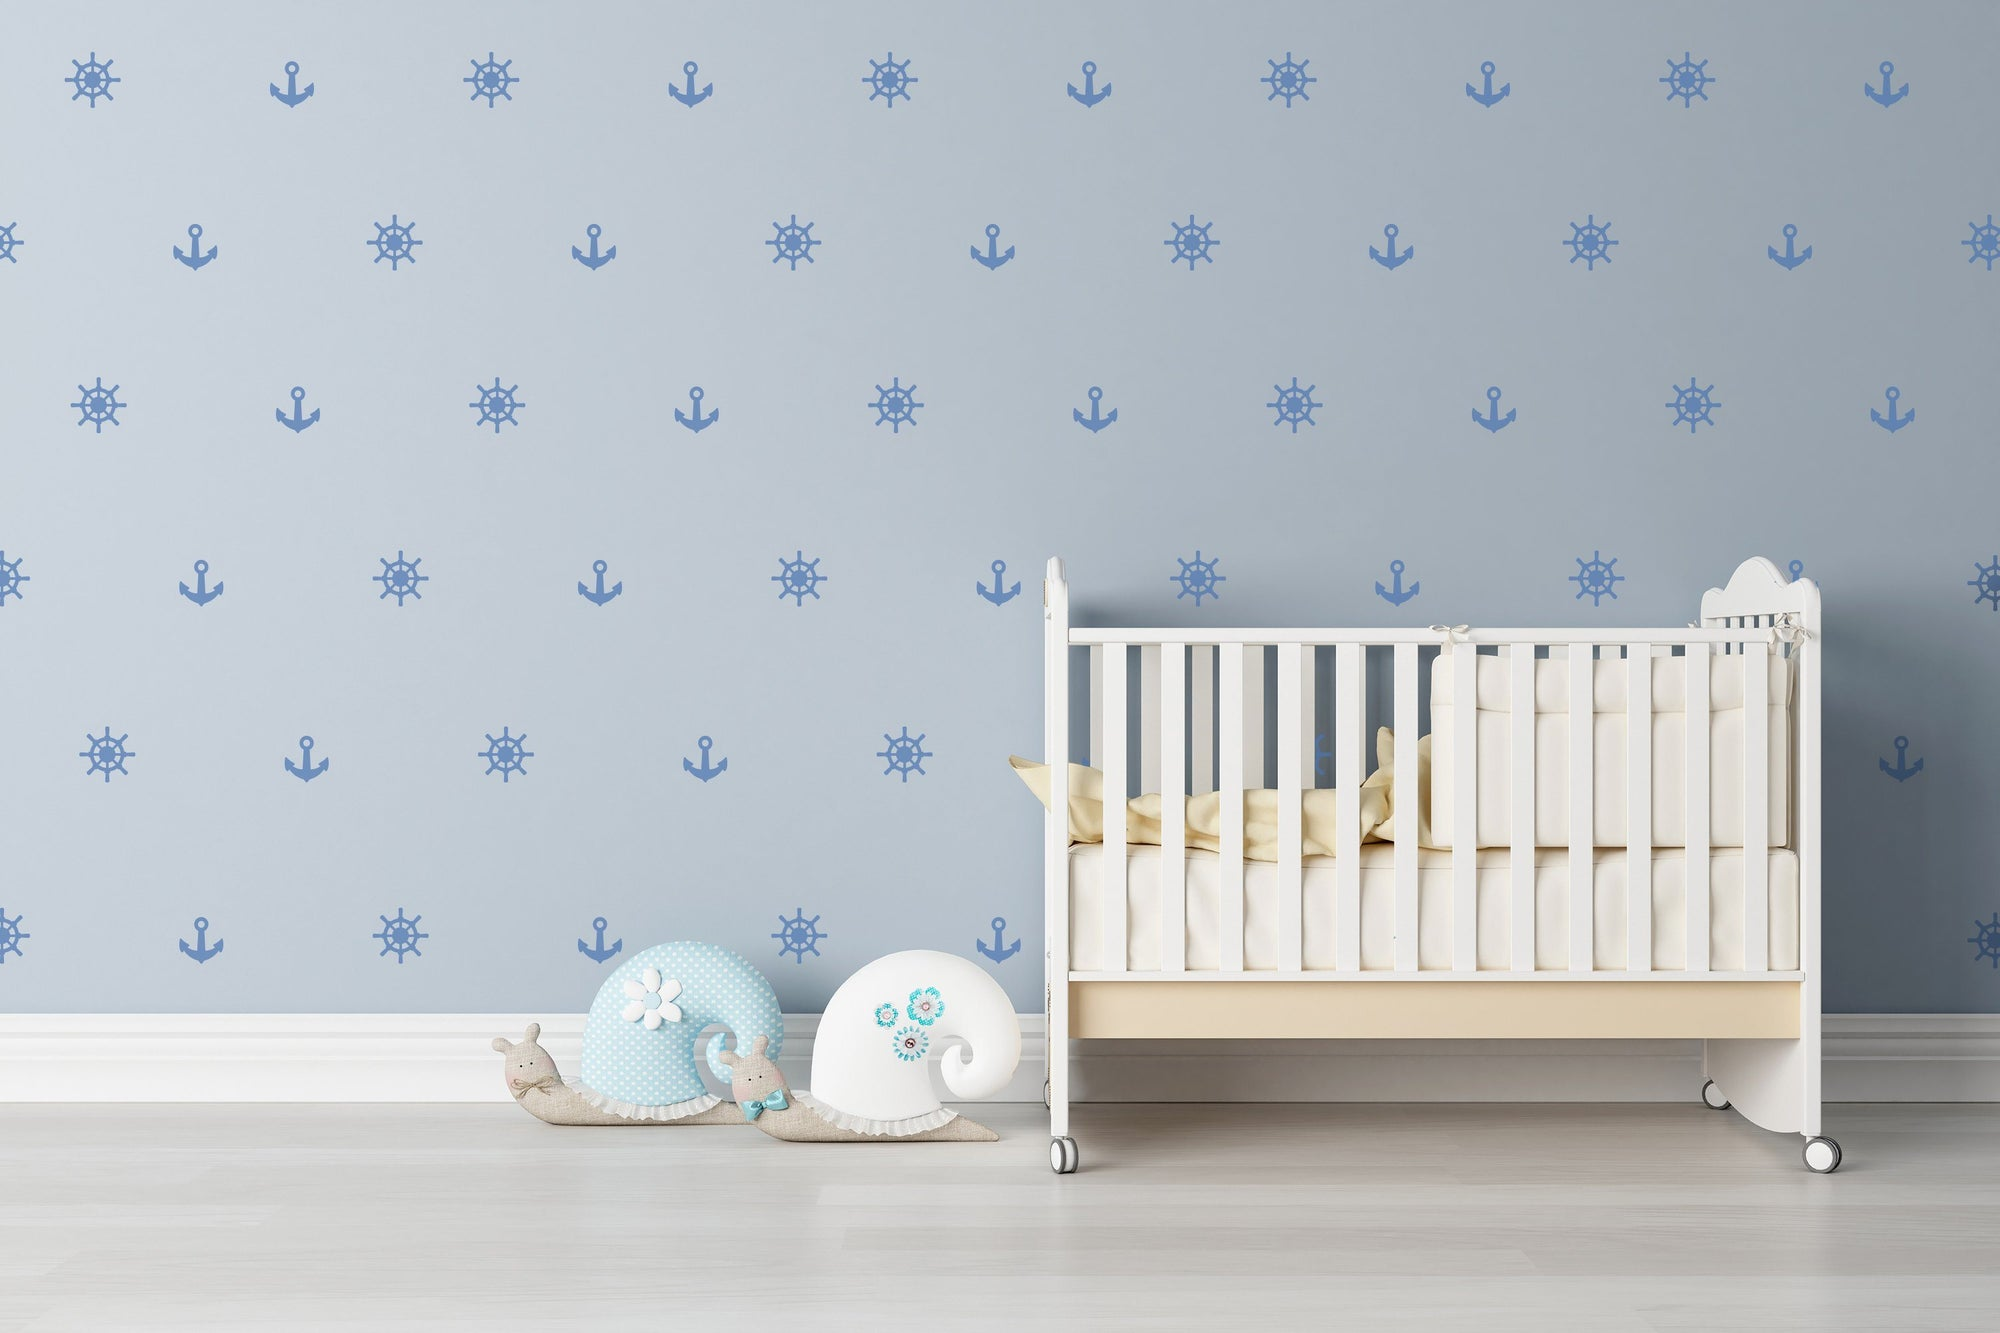 Anchor Nautical Nursery Wall Art - Vinyl Wall Decals For Nurseries, Children's Rooms, And Home Decor